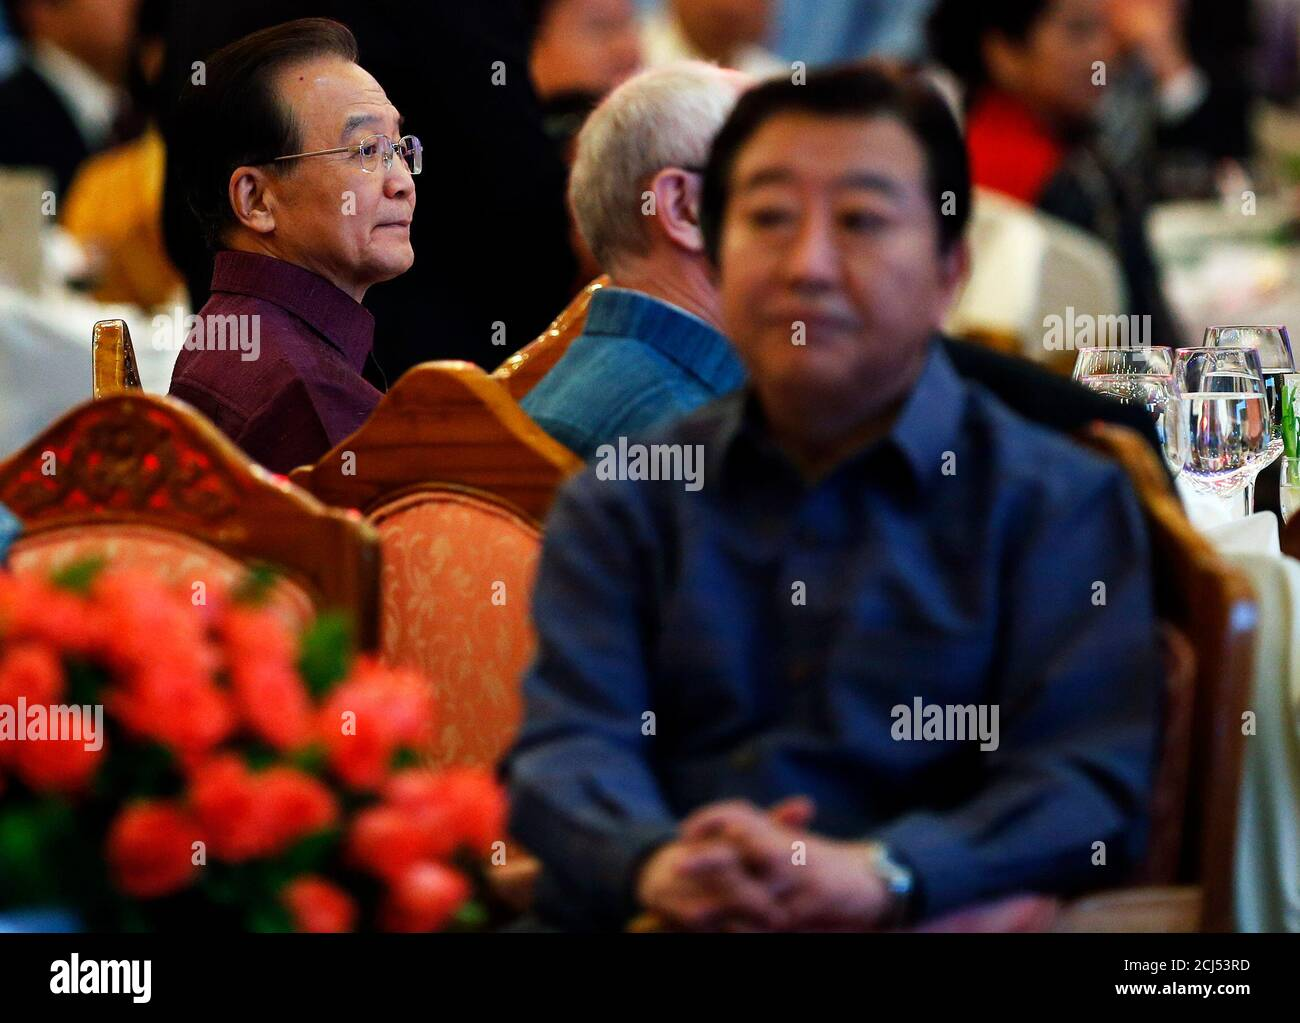 China's Premier Wen Jiabao (L) sits behind Japan's Prime Minister Yoshihiko Noda at the gala dinner as a part of the ASEM Summit in Vientiane November 5, 2012. A high-profile group of leaders and foreign ministers from Asia and Europe arrived at the capital of Laos for the Asia-Europe Meeting (ASEM) summit, held once every two years and scheduled from November 5 to 6. REUTERS/Damir Sagolj (LAOS - Tags: POLITICS) Banque D'Images